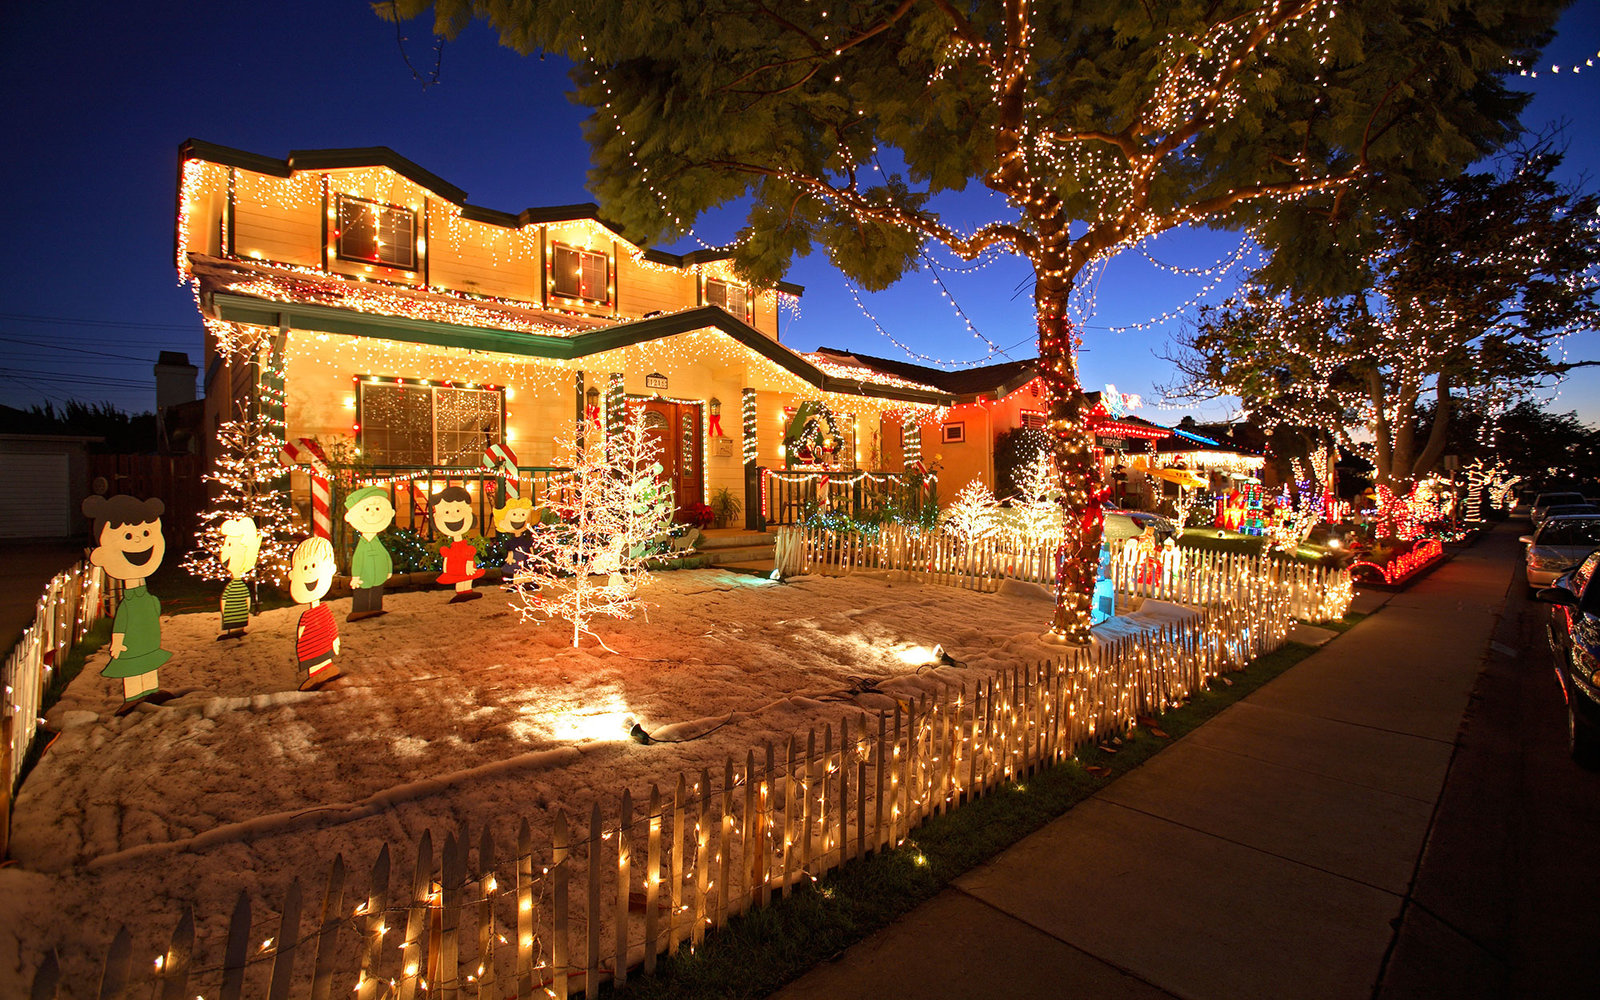 ATF28W Candy Cane Lane, El Segundo, Los Angeles, California